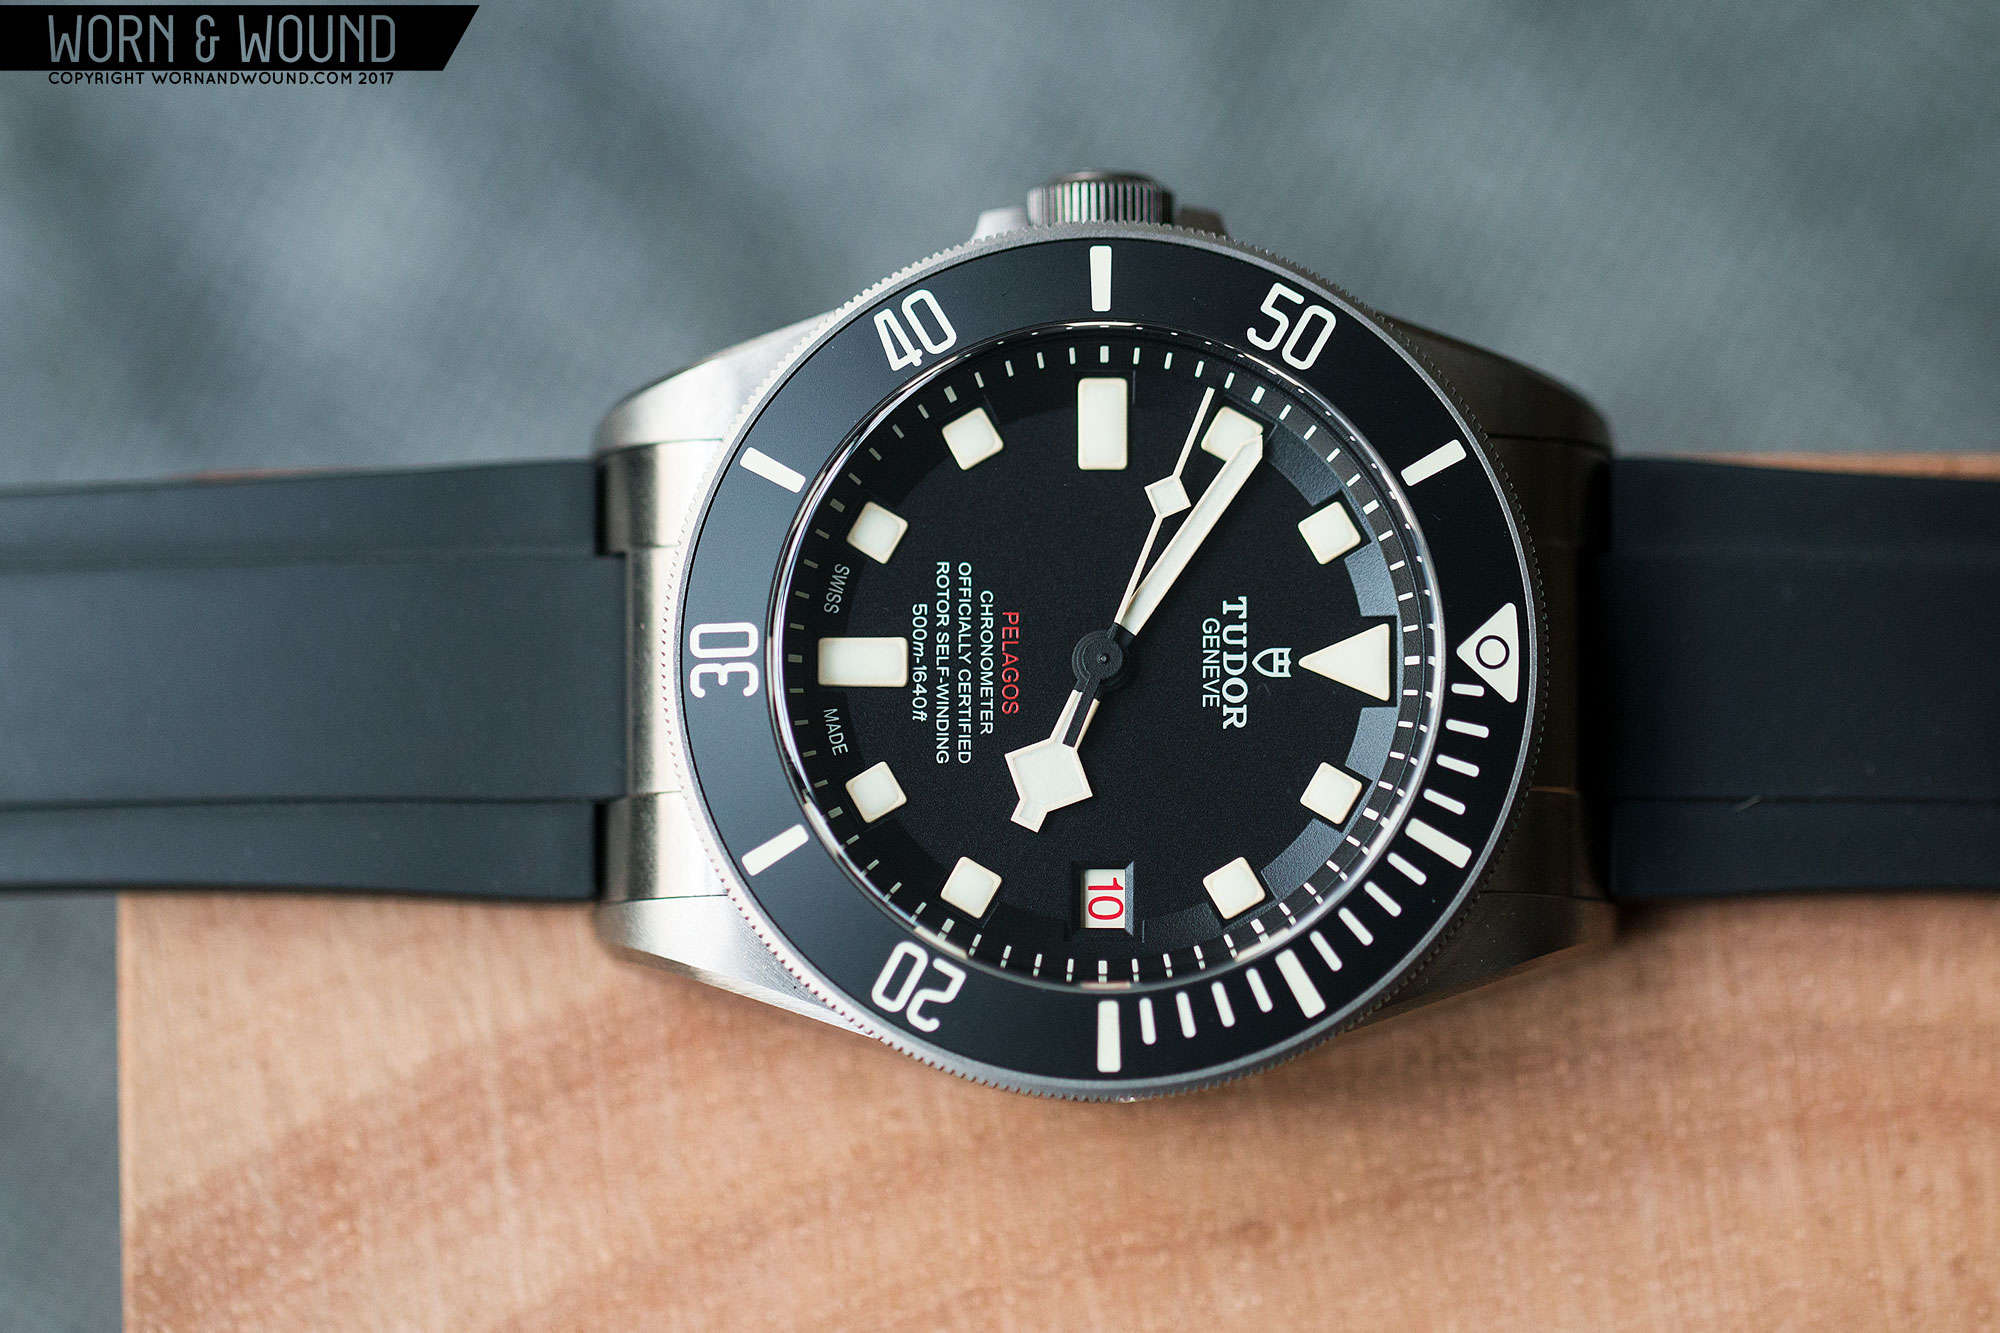 tudor pelagos lhd review worn wound. Black Bedroom Furniture Sets. Home Design Ideas